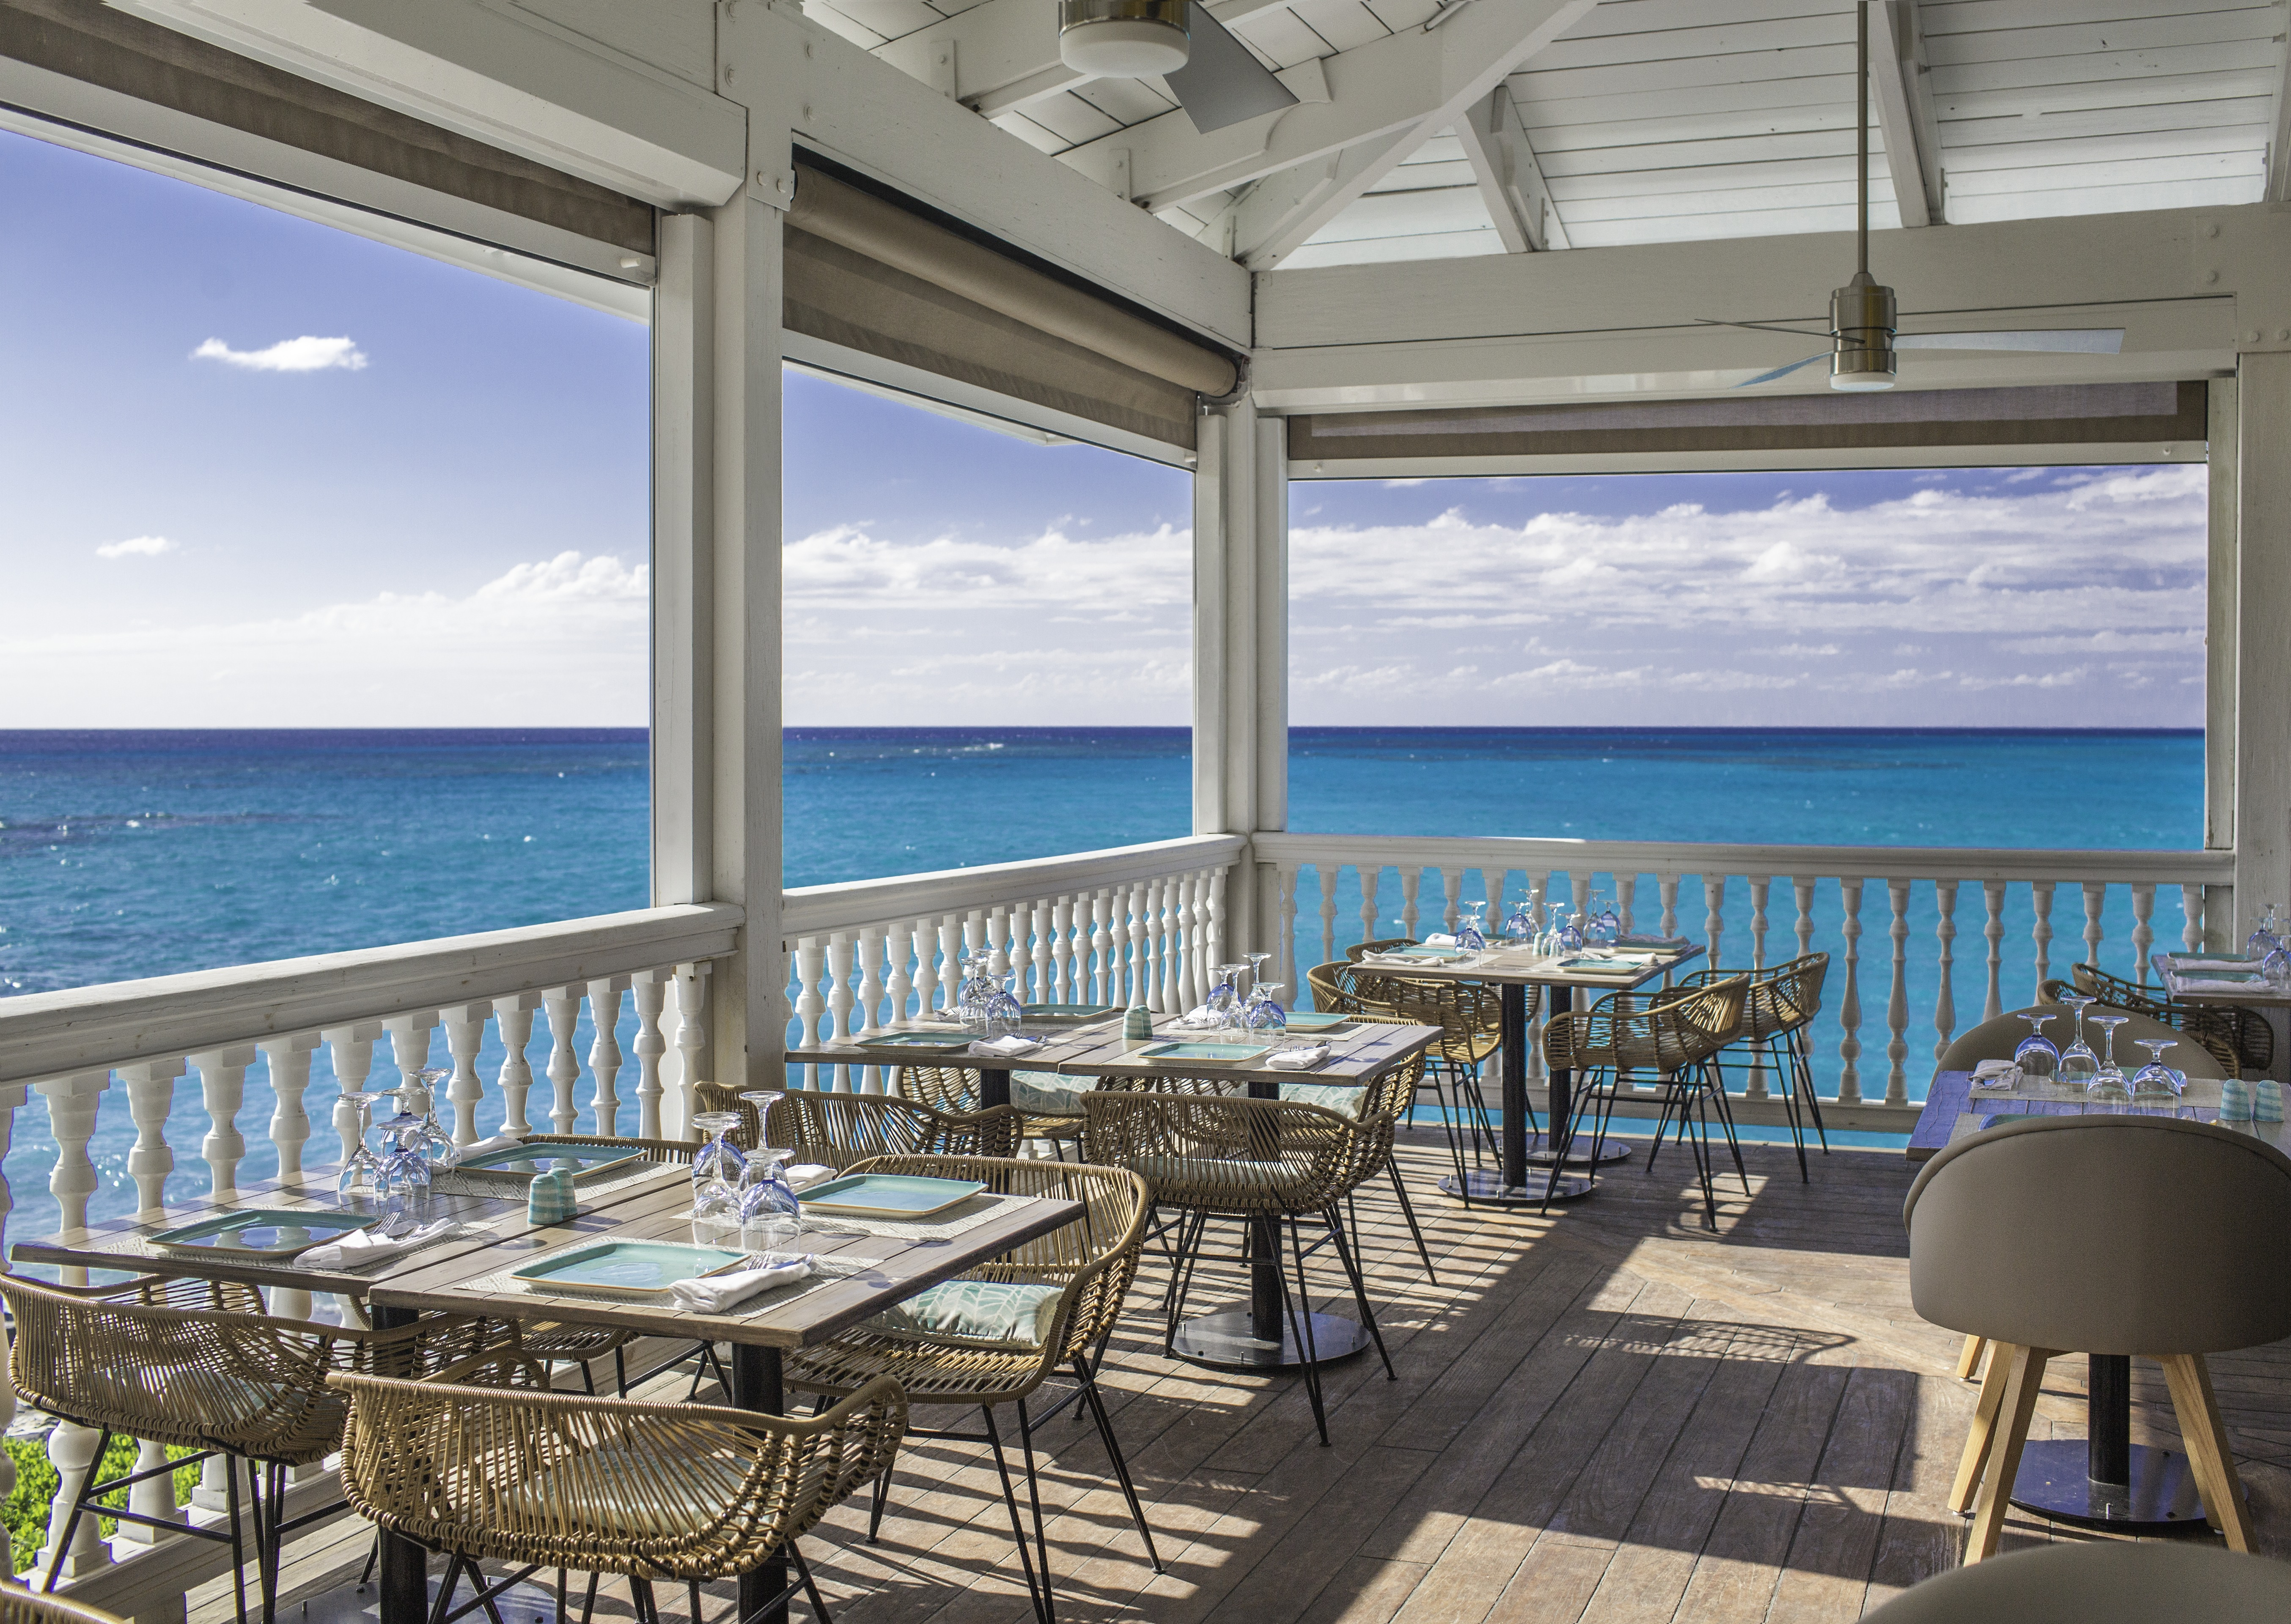 All Inclusive Resort In The Bahamas All Inclusive Vacations With - Drinking age in bahamas